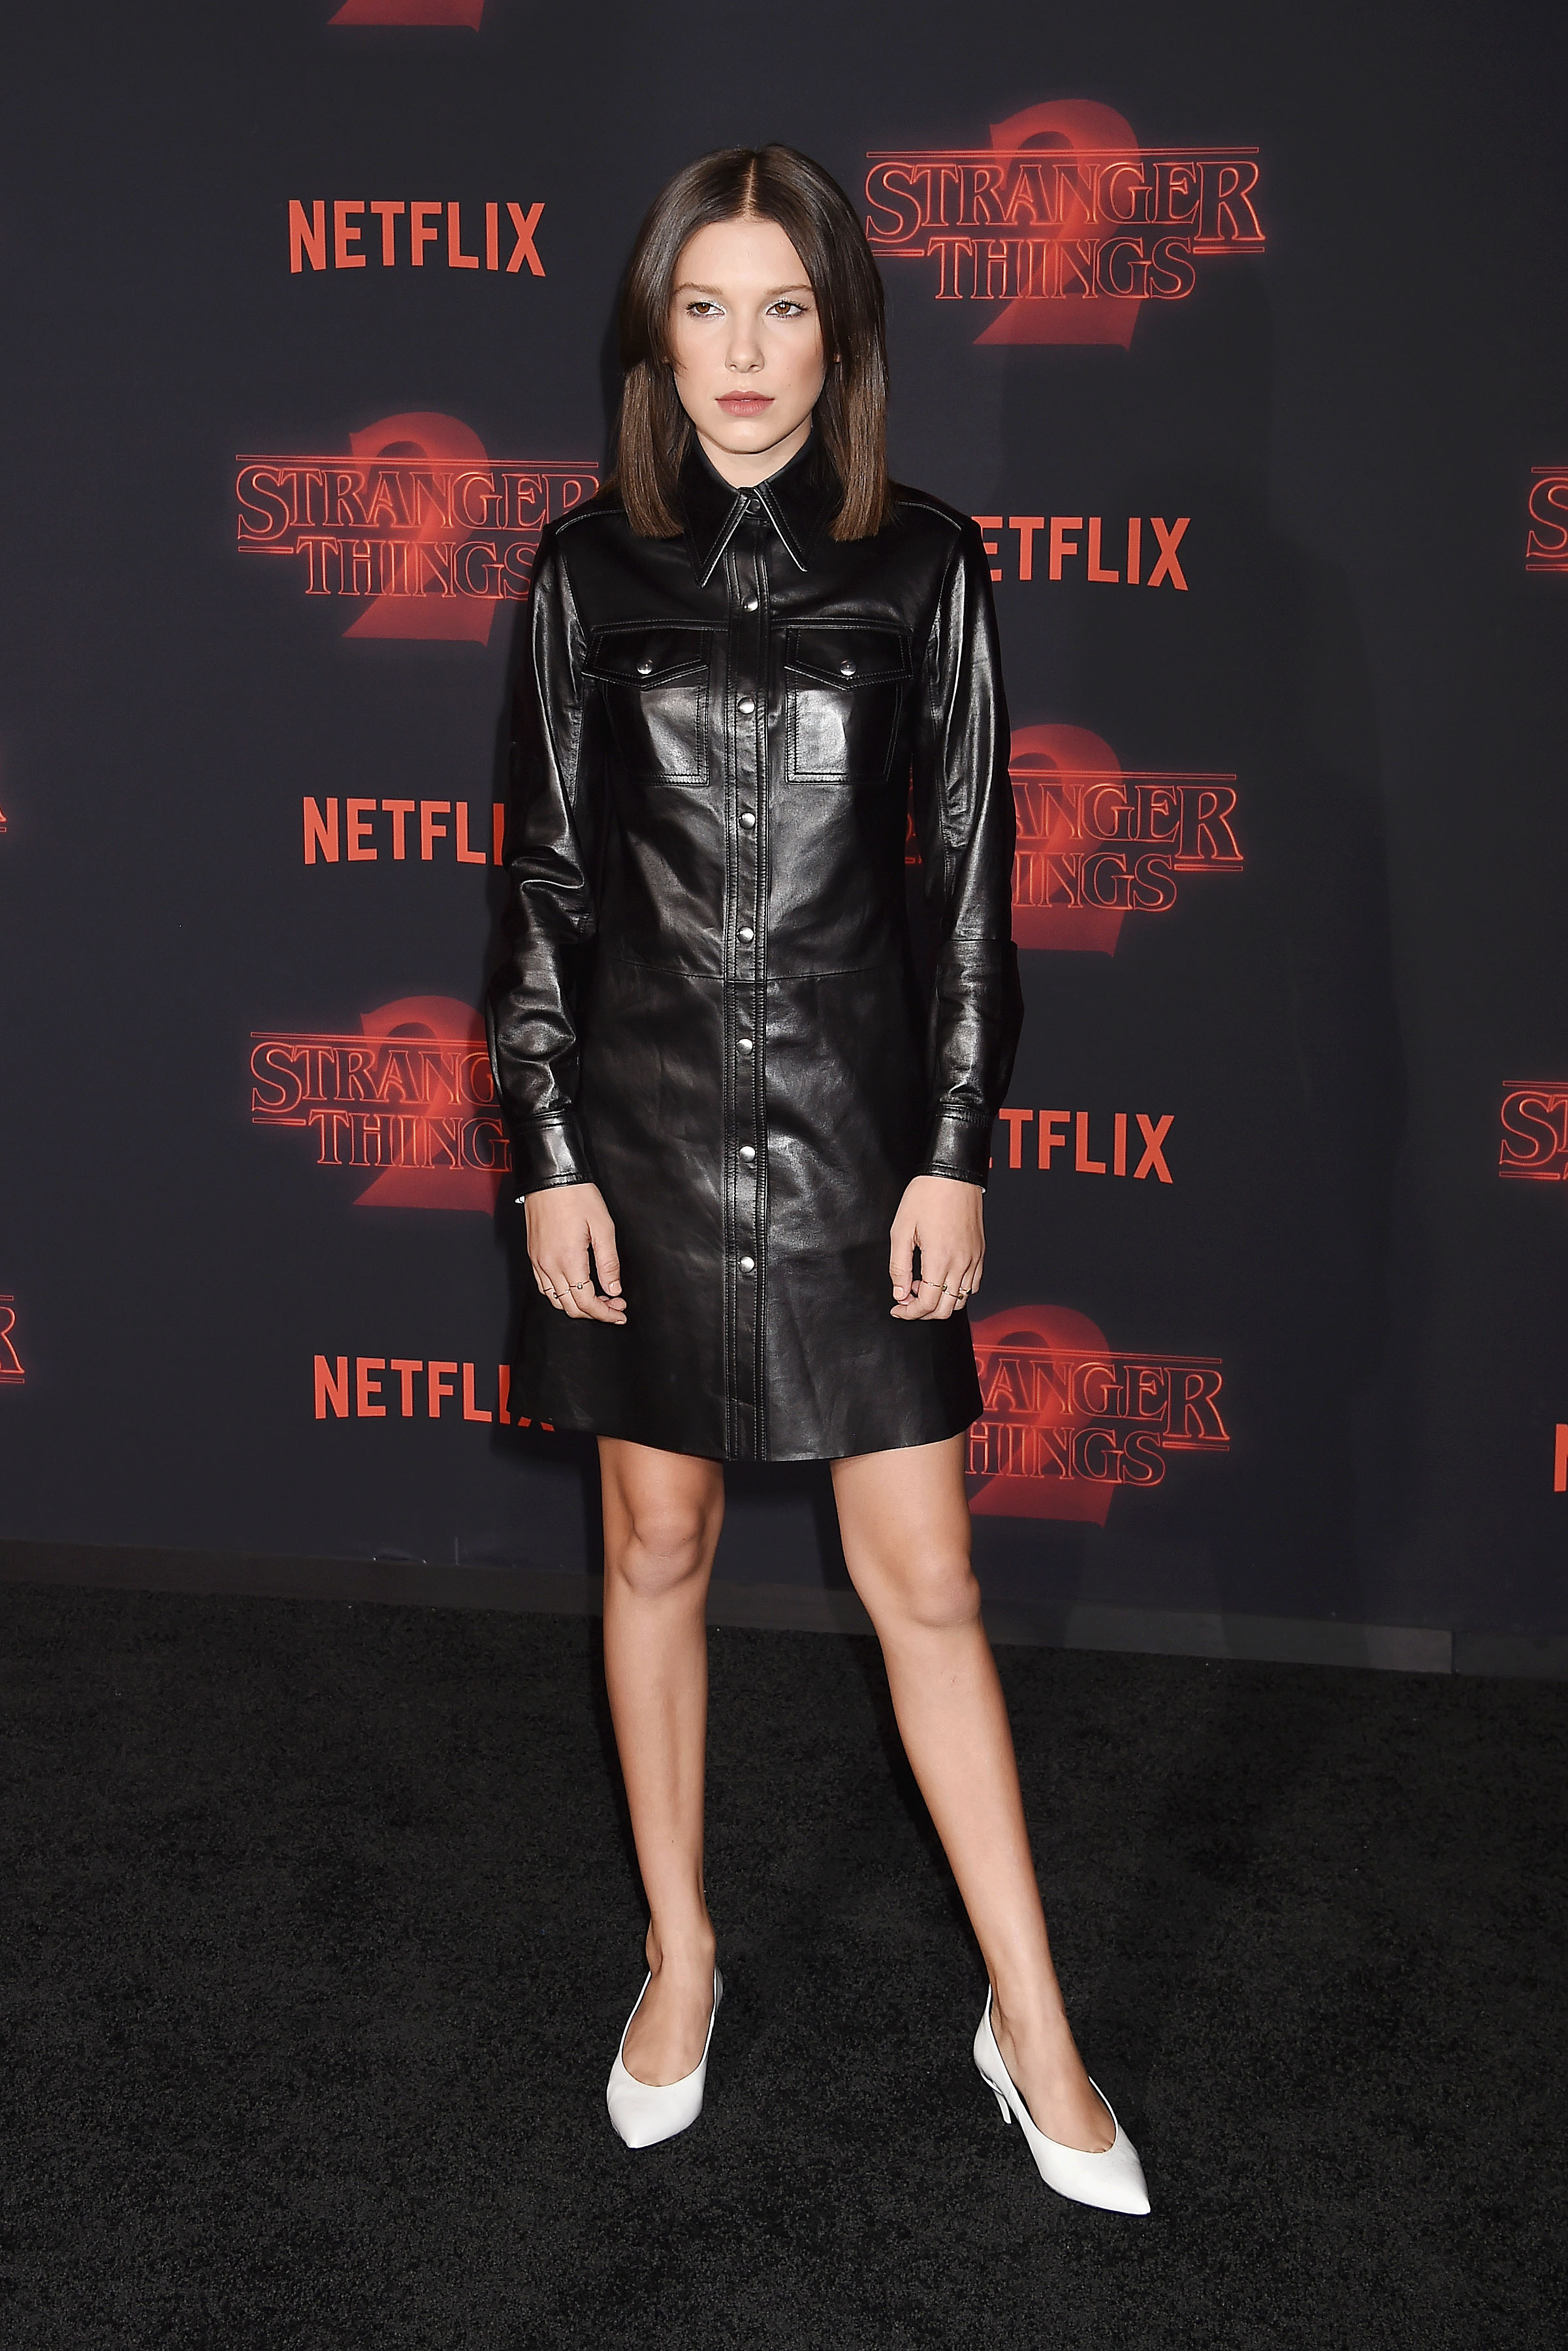 Millie Bobby Brown at the Stranger Things 2 premiere in Los Angeles